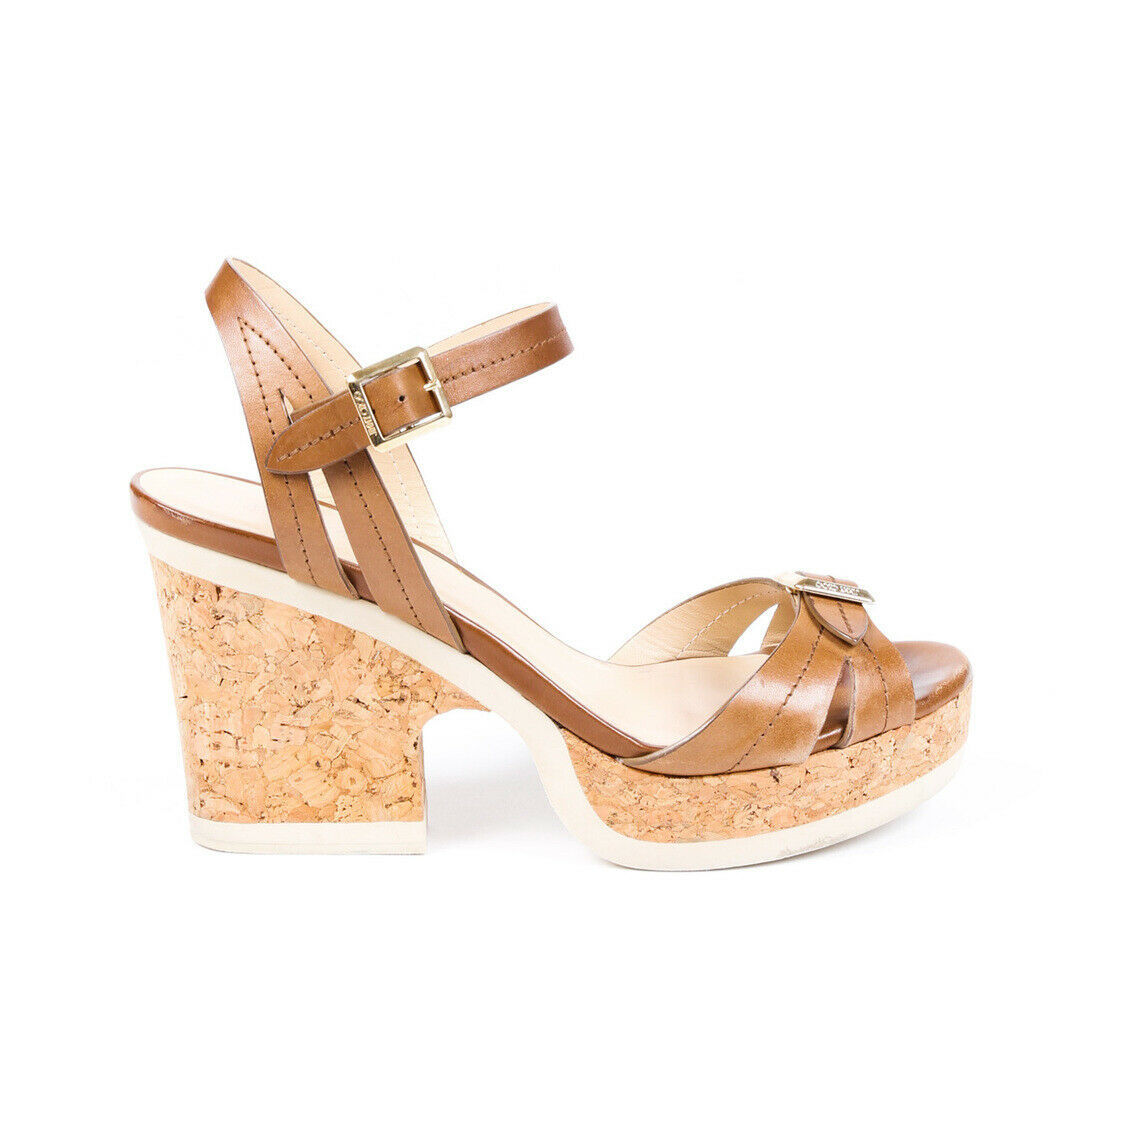 Primary image for Jimmy Choo Vachetta Nemesis Cork Platform Sandals SZ 40.5